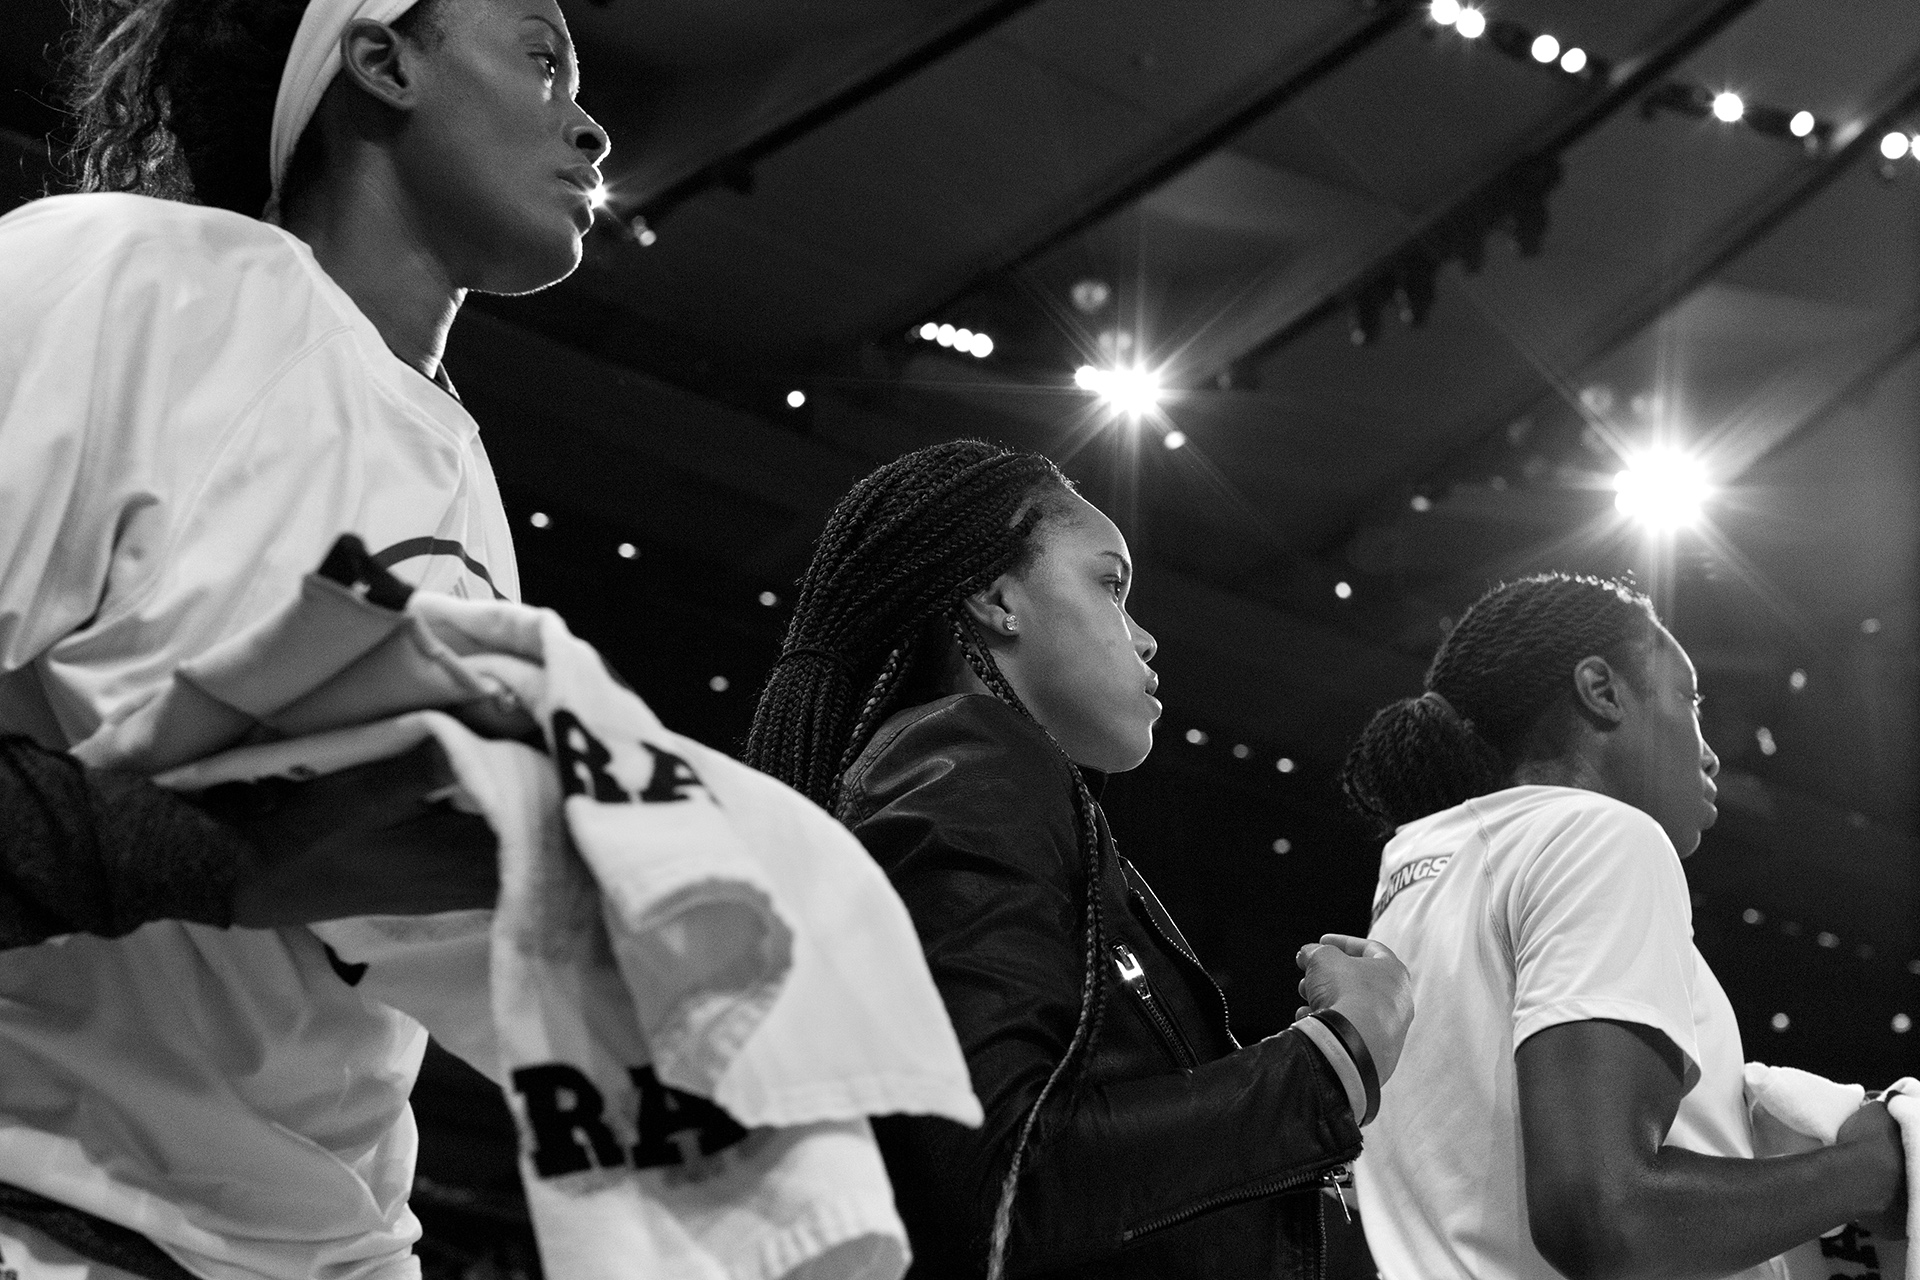 NY Liberty versus the Connecticut Sun on September 10, 2015 at Madison Square Garden in New York City. The Liberty won 74 to 64.  (Photo by Annie Flanagan for The Players Tribune)